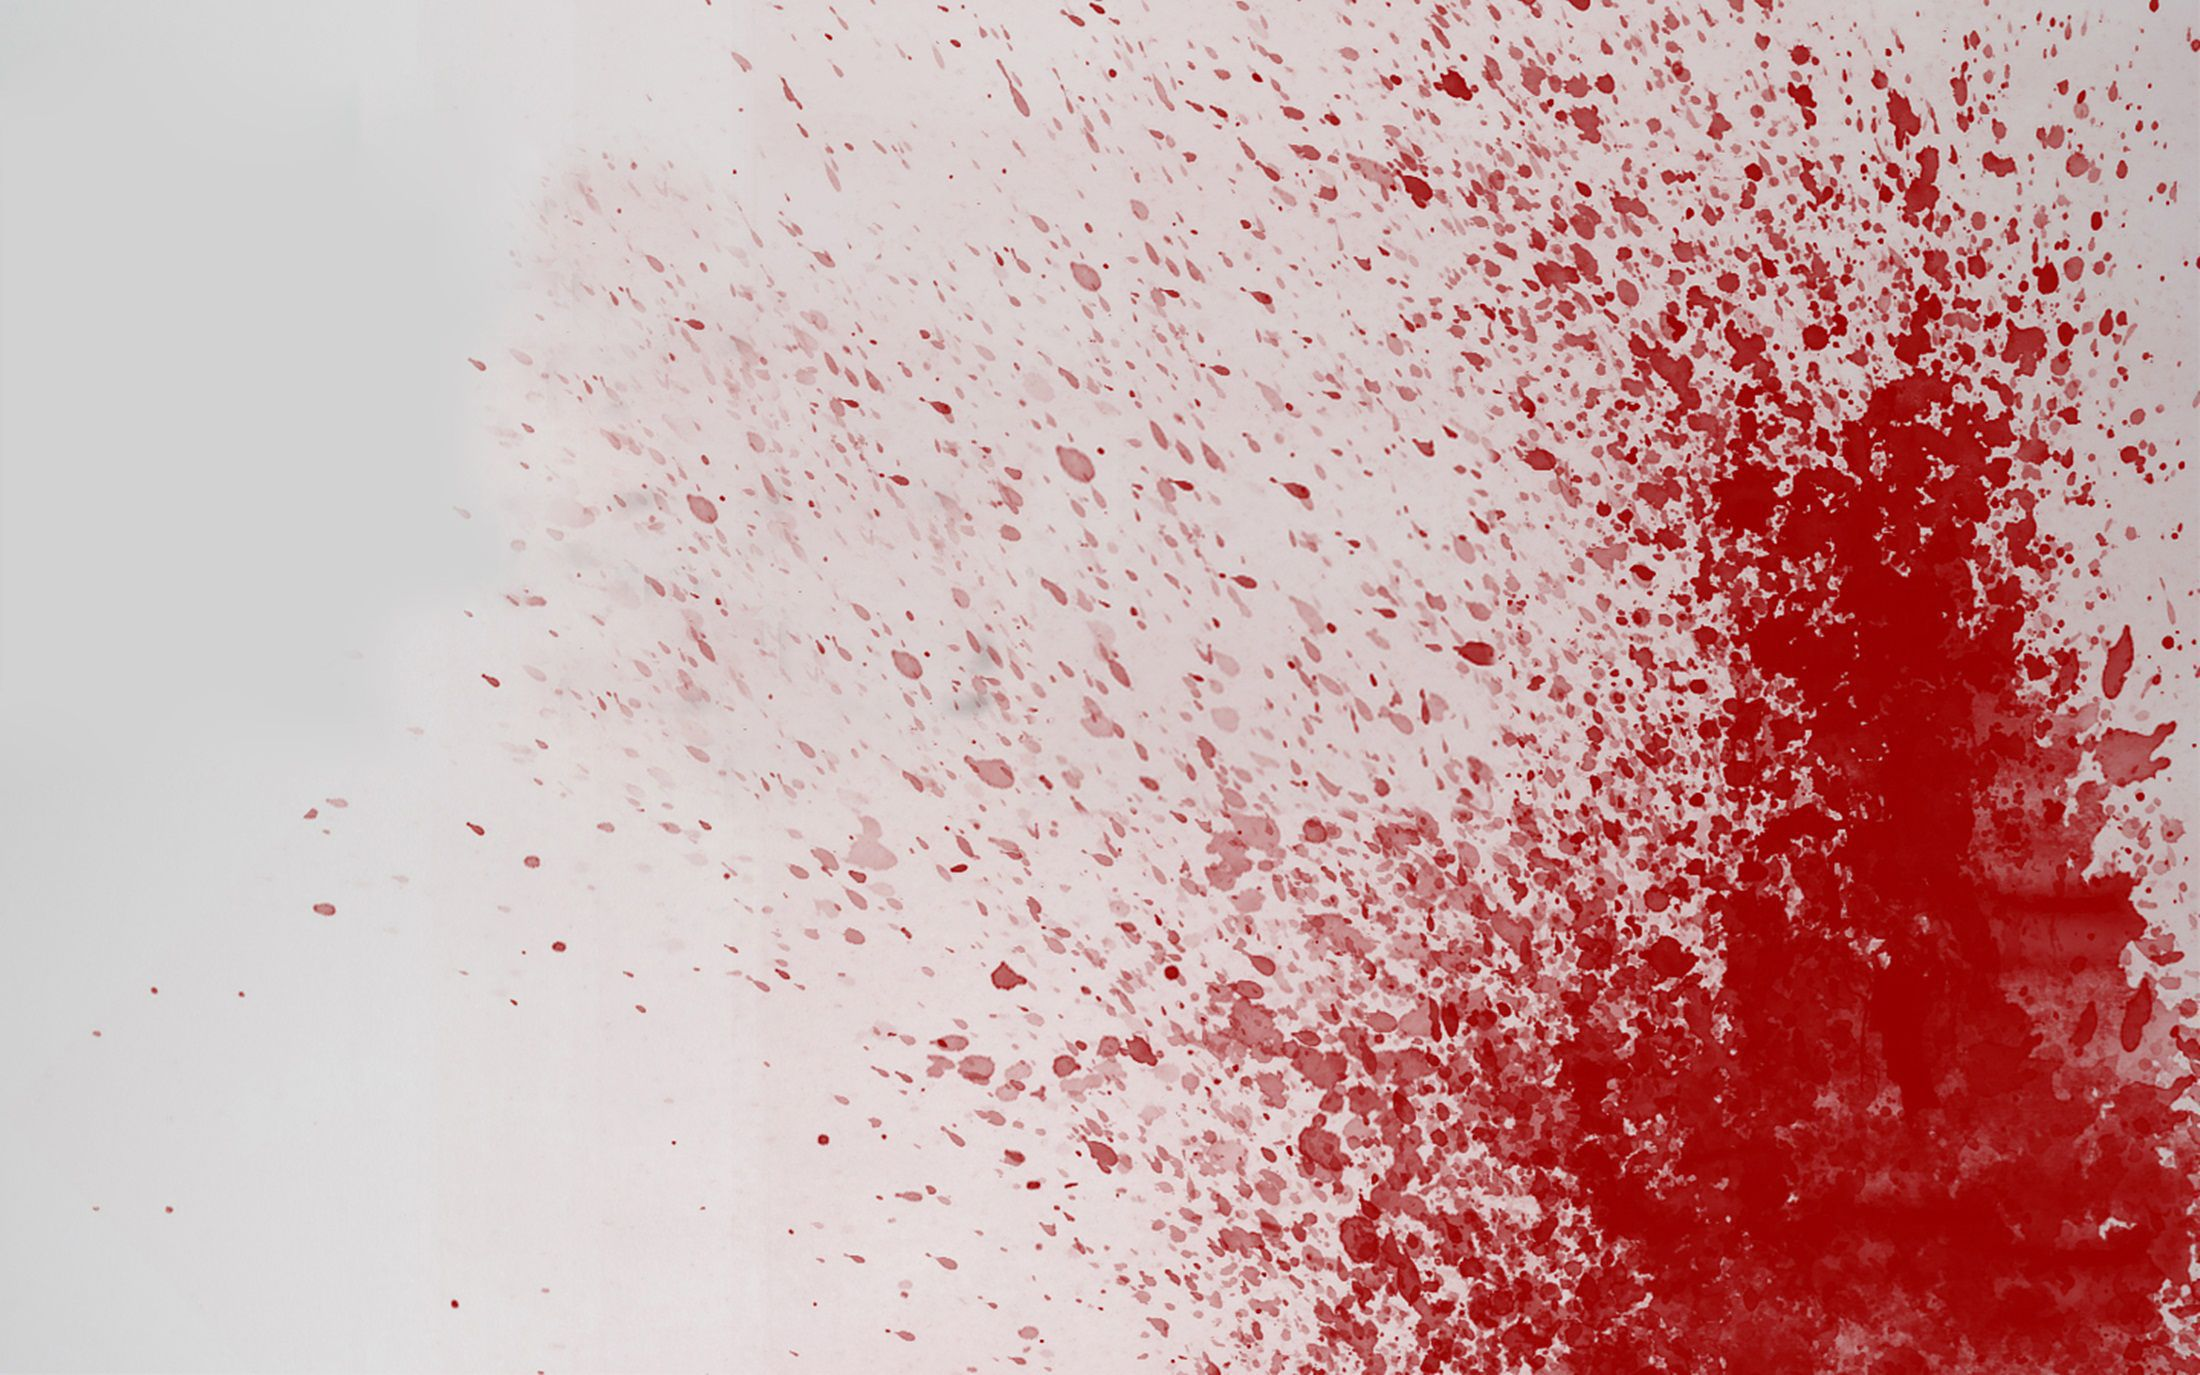 Blood Splatter Photos